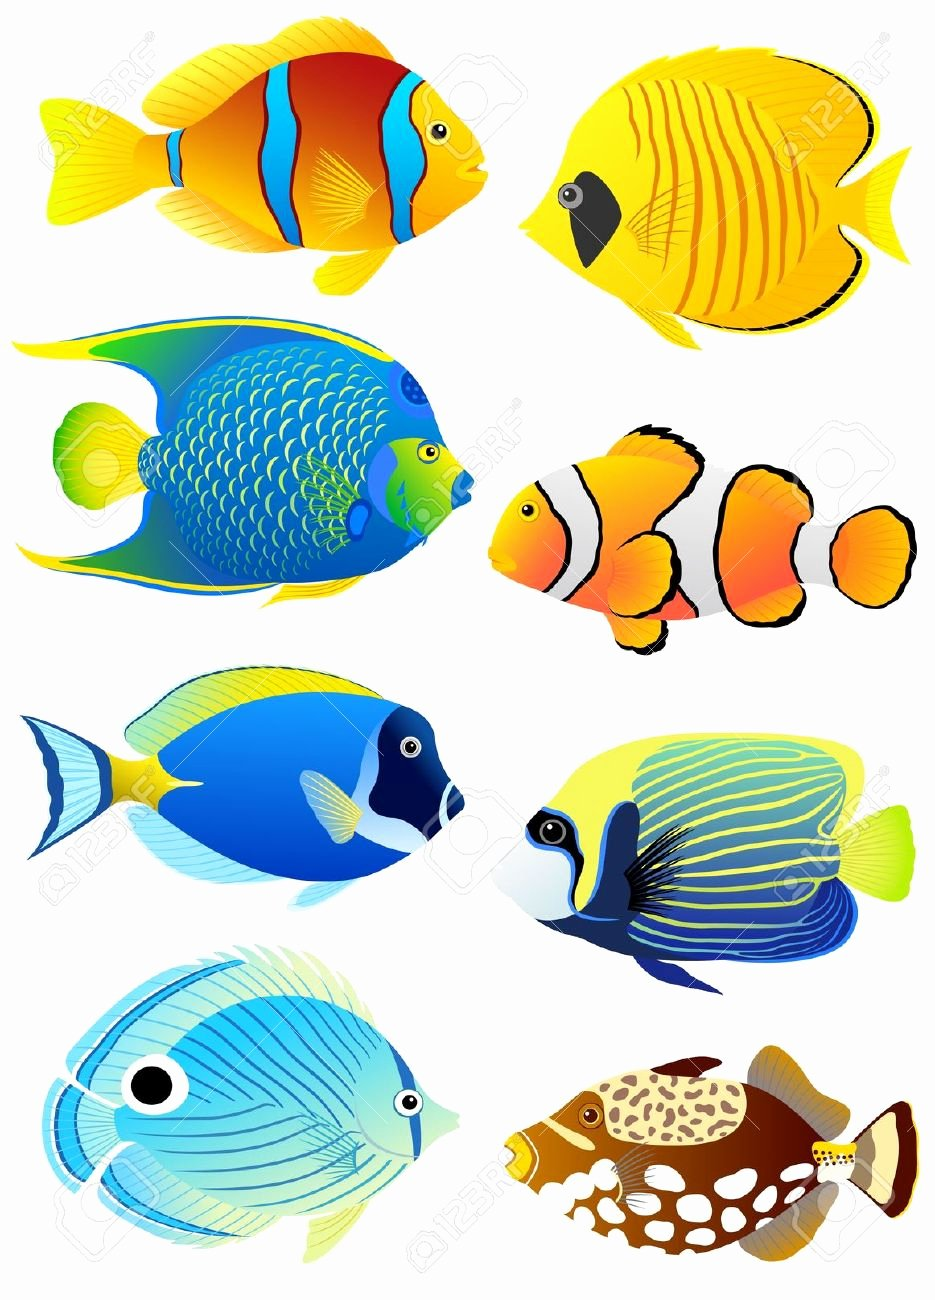 Free Printable Fish Pictures New Aquarium Fish Clipart Clipground